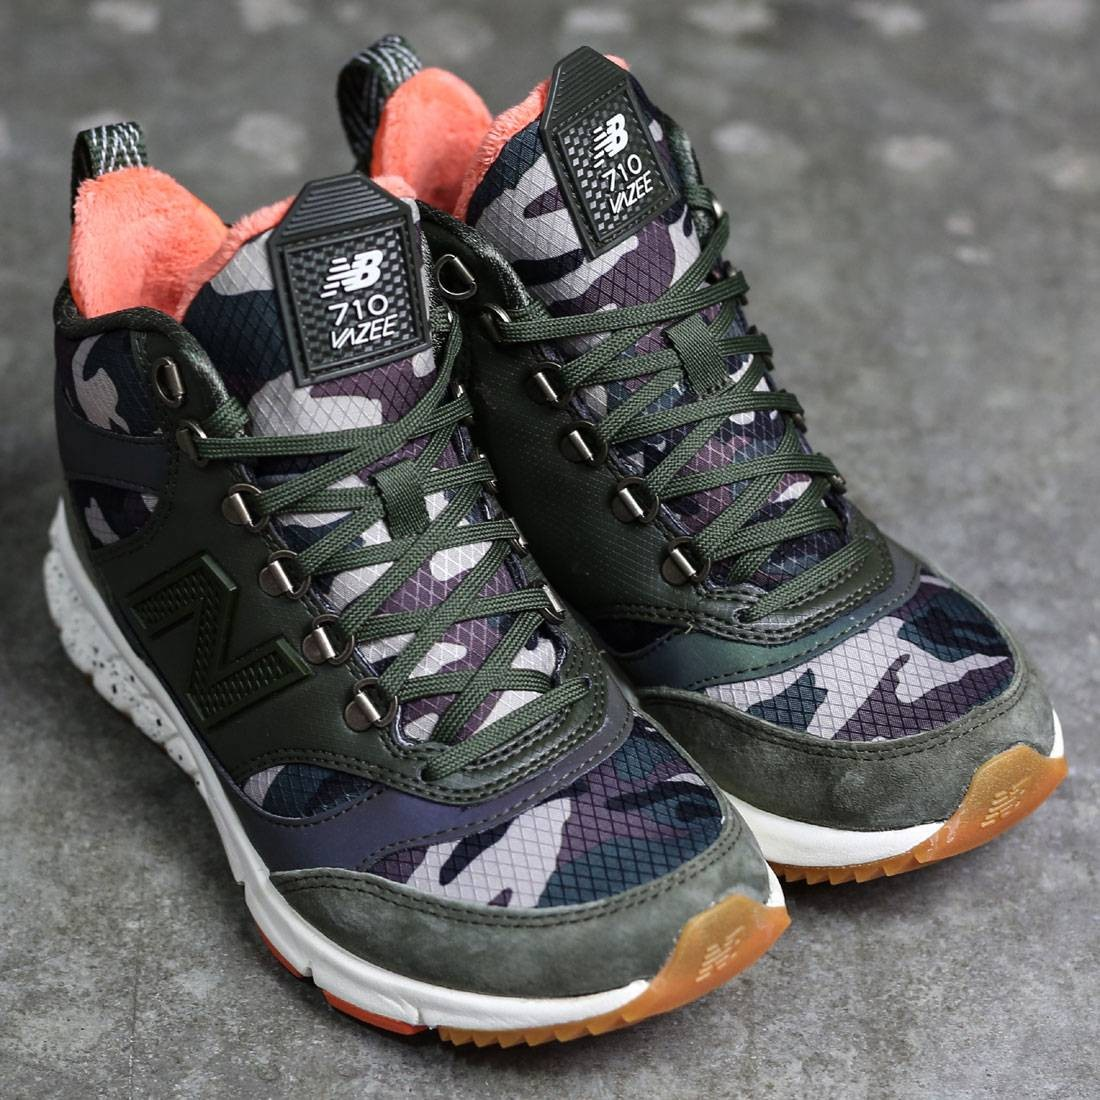 Free shipping BOTH ways on shoe from new balance, from our vast selection of styles. Fast delivery, and 24/7/ real-person service with a smile. Click or call